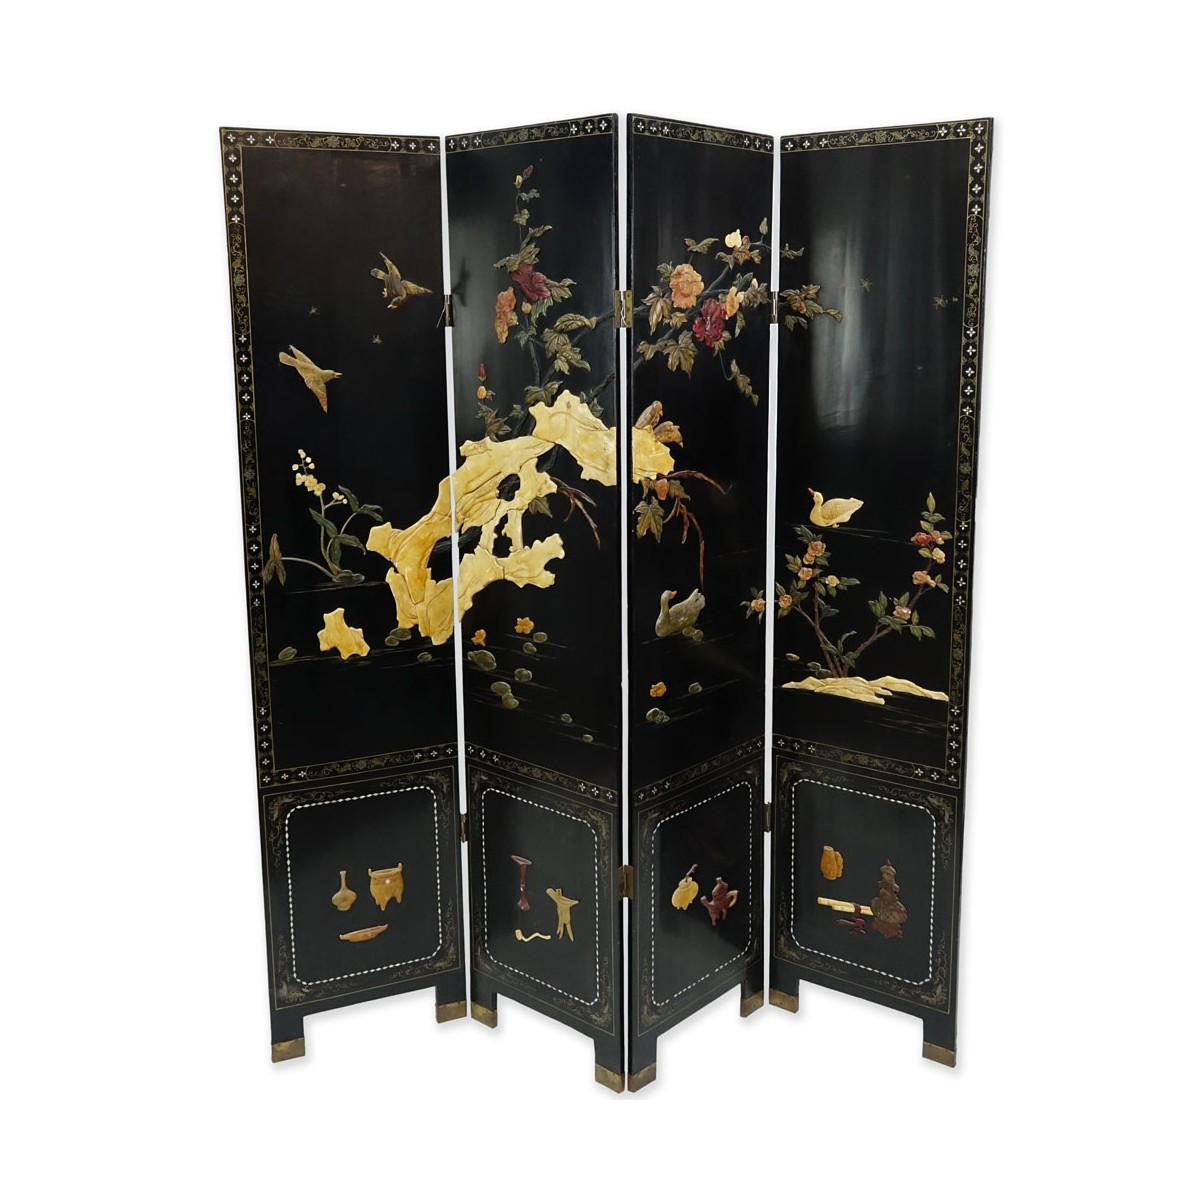 Vintage Mid-Century Chinese Four-Paneled Screen. Enamels, inlaid